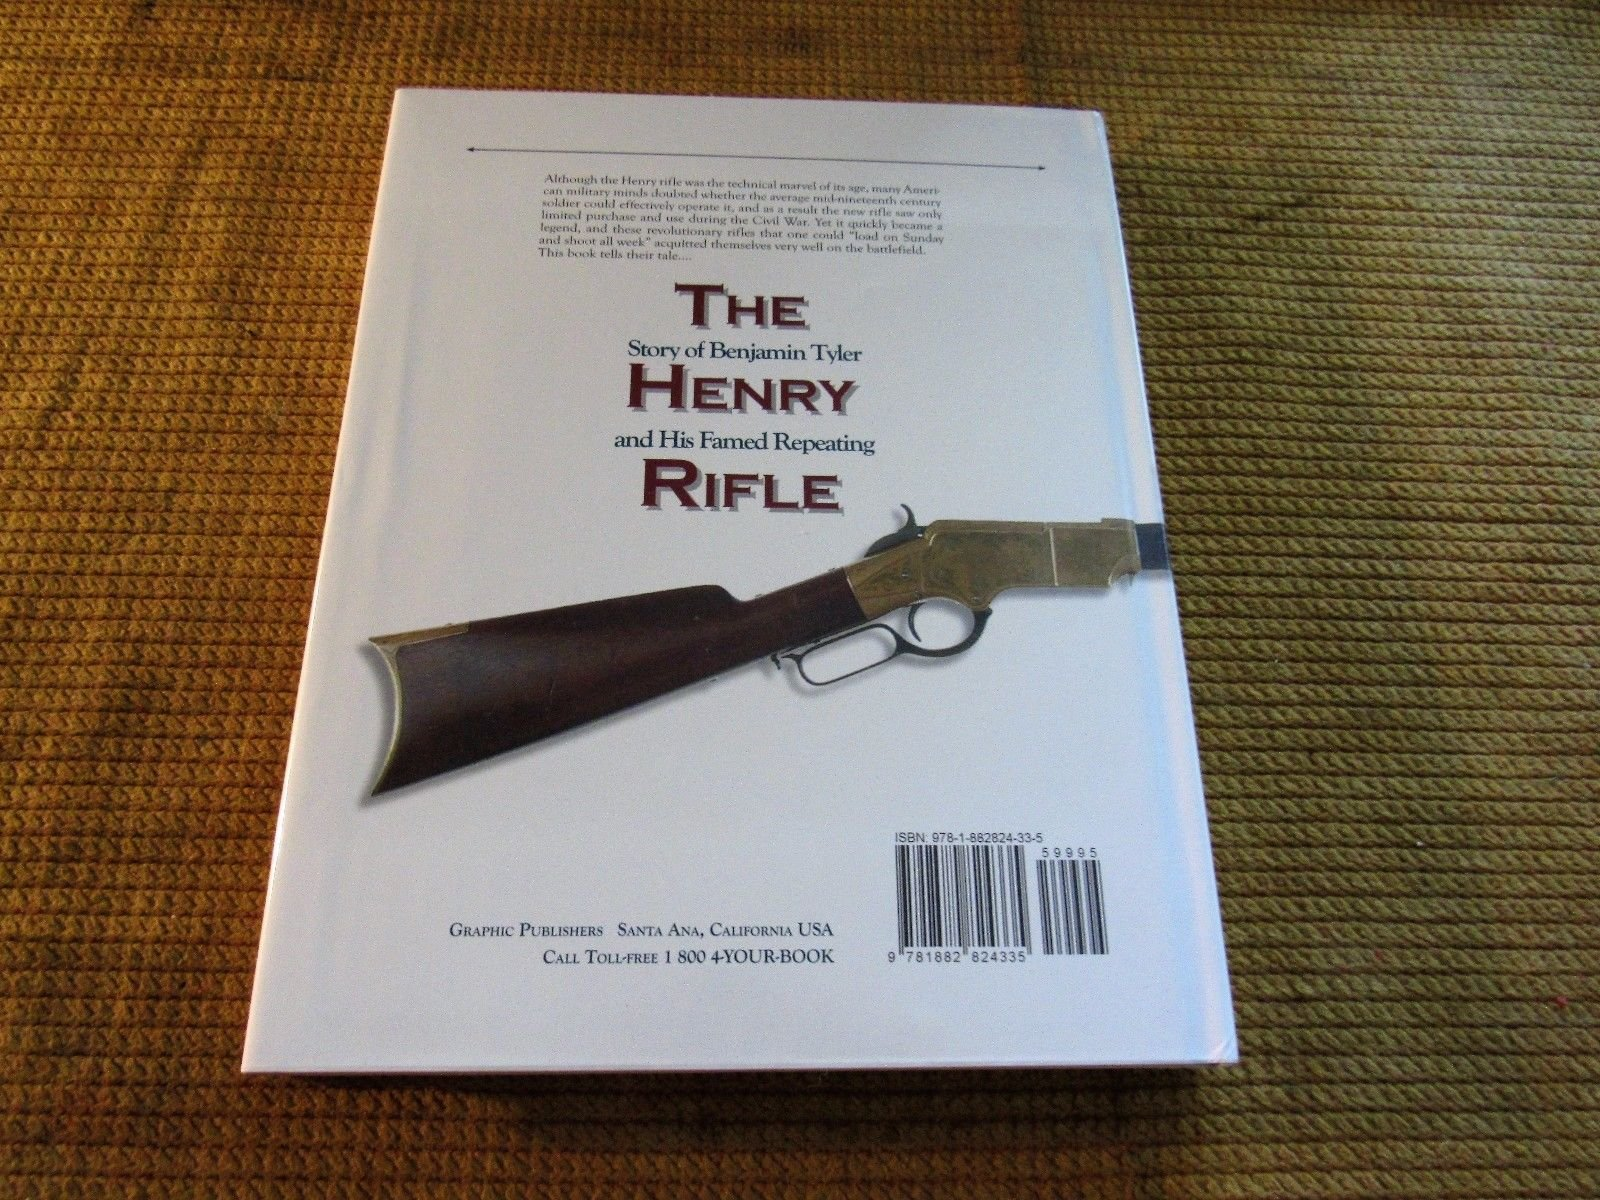 The Story of Benjamin Tyler Henry and His Famed Repeating Rifle: Les